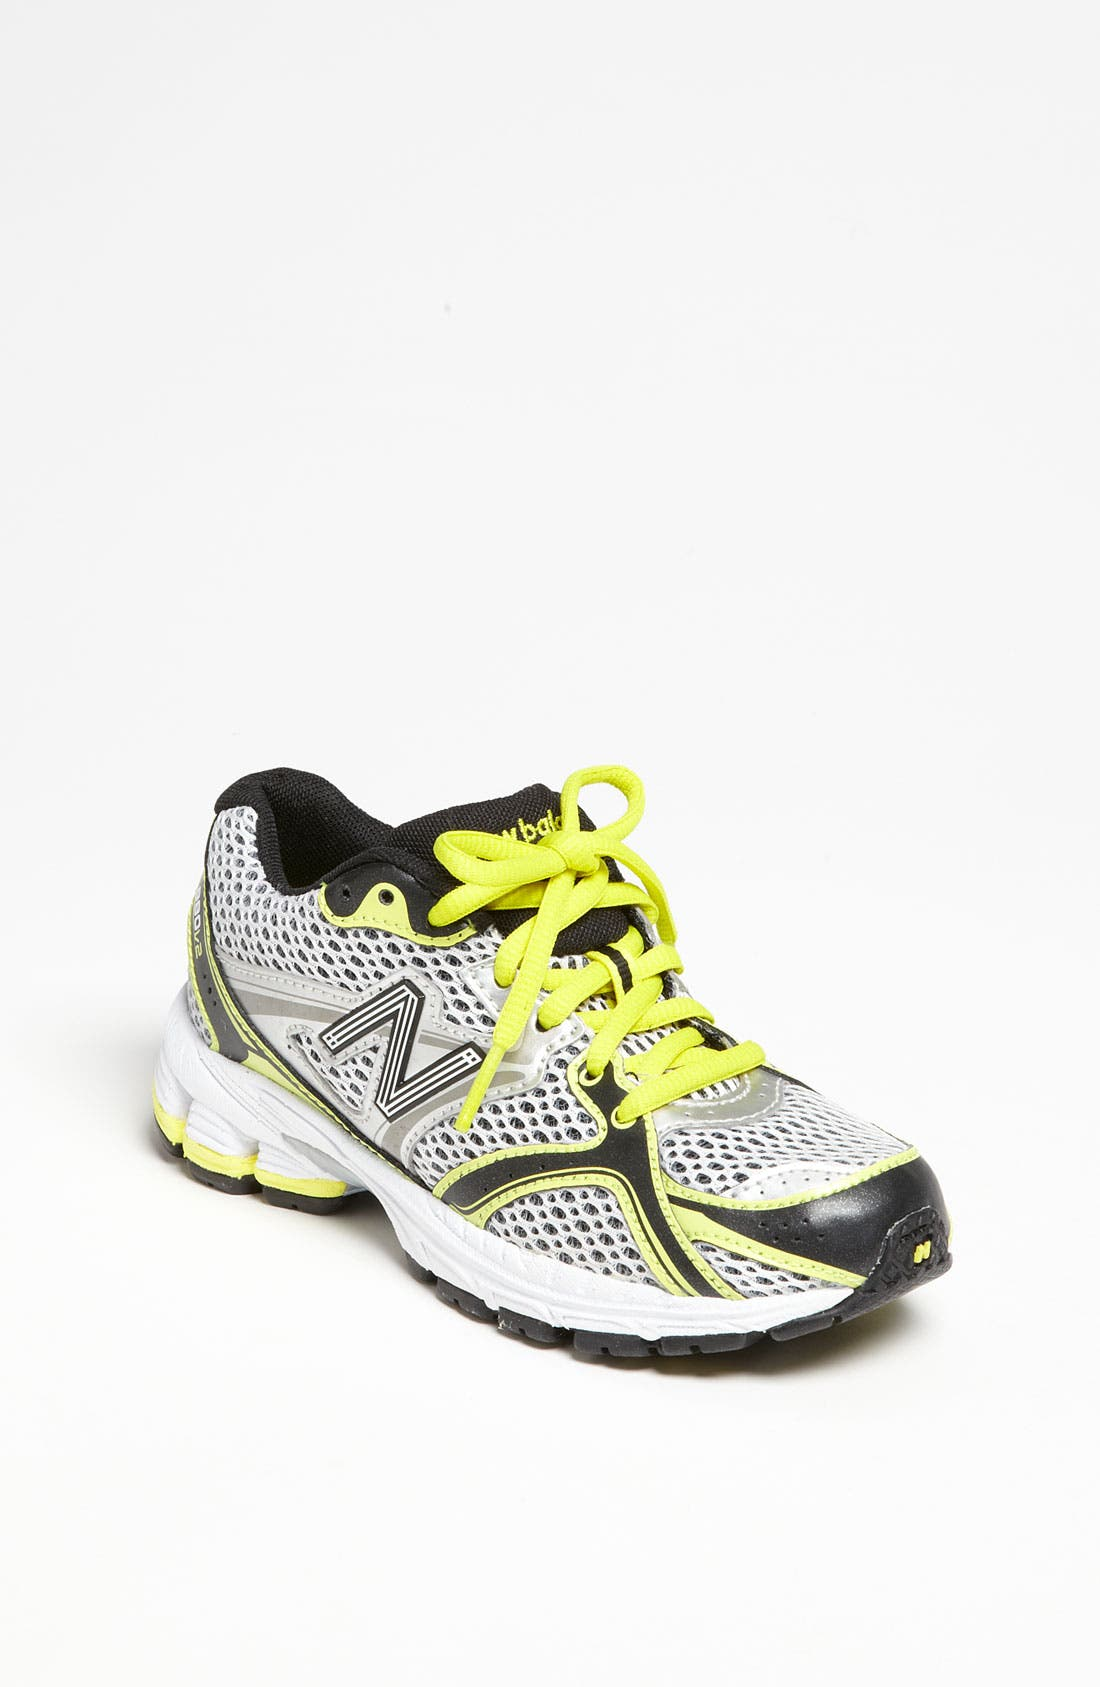 Alternate Image 1 Selected - New Balance 'Take Down 880' Running Shoe (Toddler, Little Kid & Big Kid)